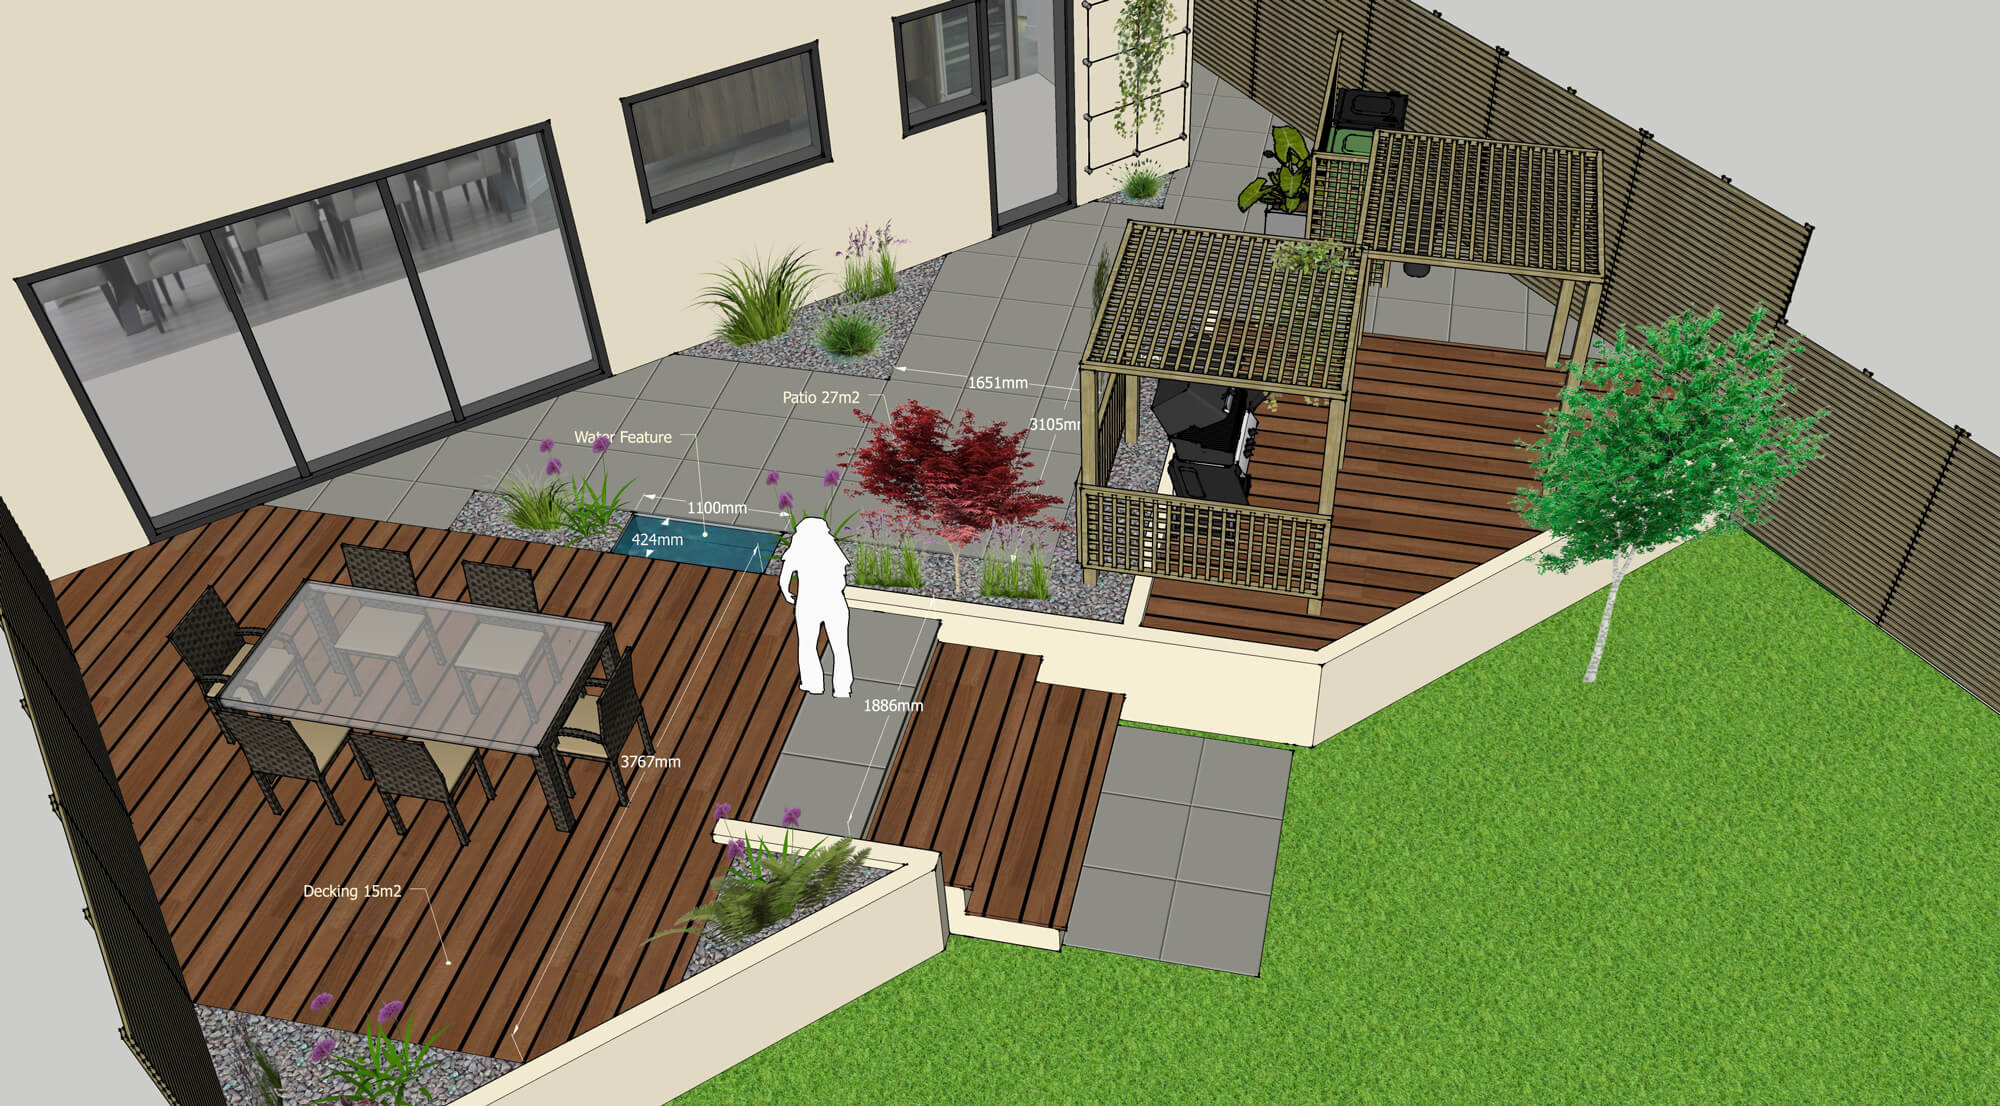 New Build Home - The Blank Canvas | Garden Design Concepts